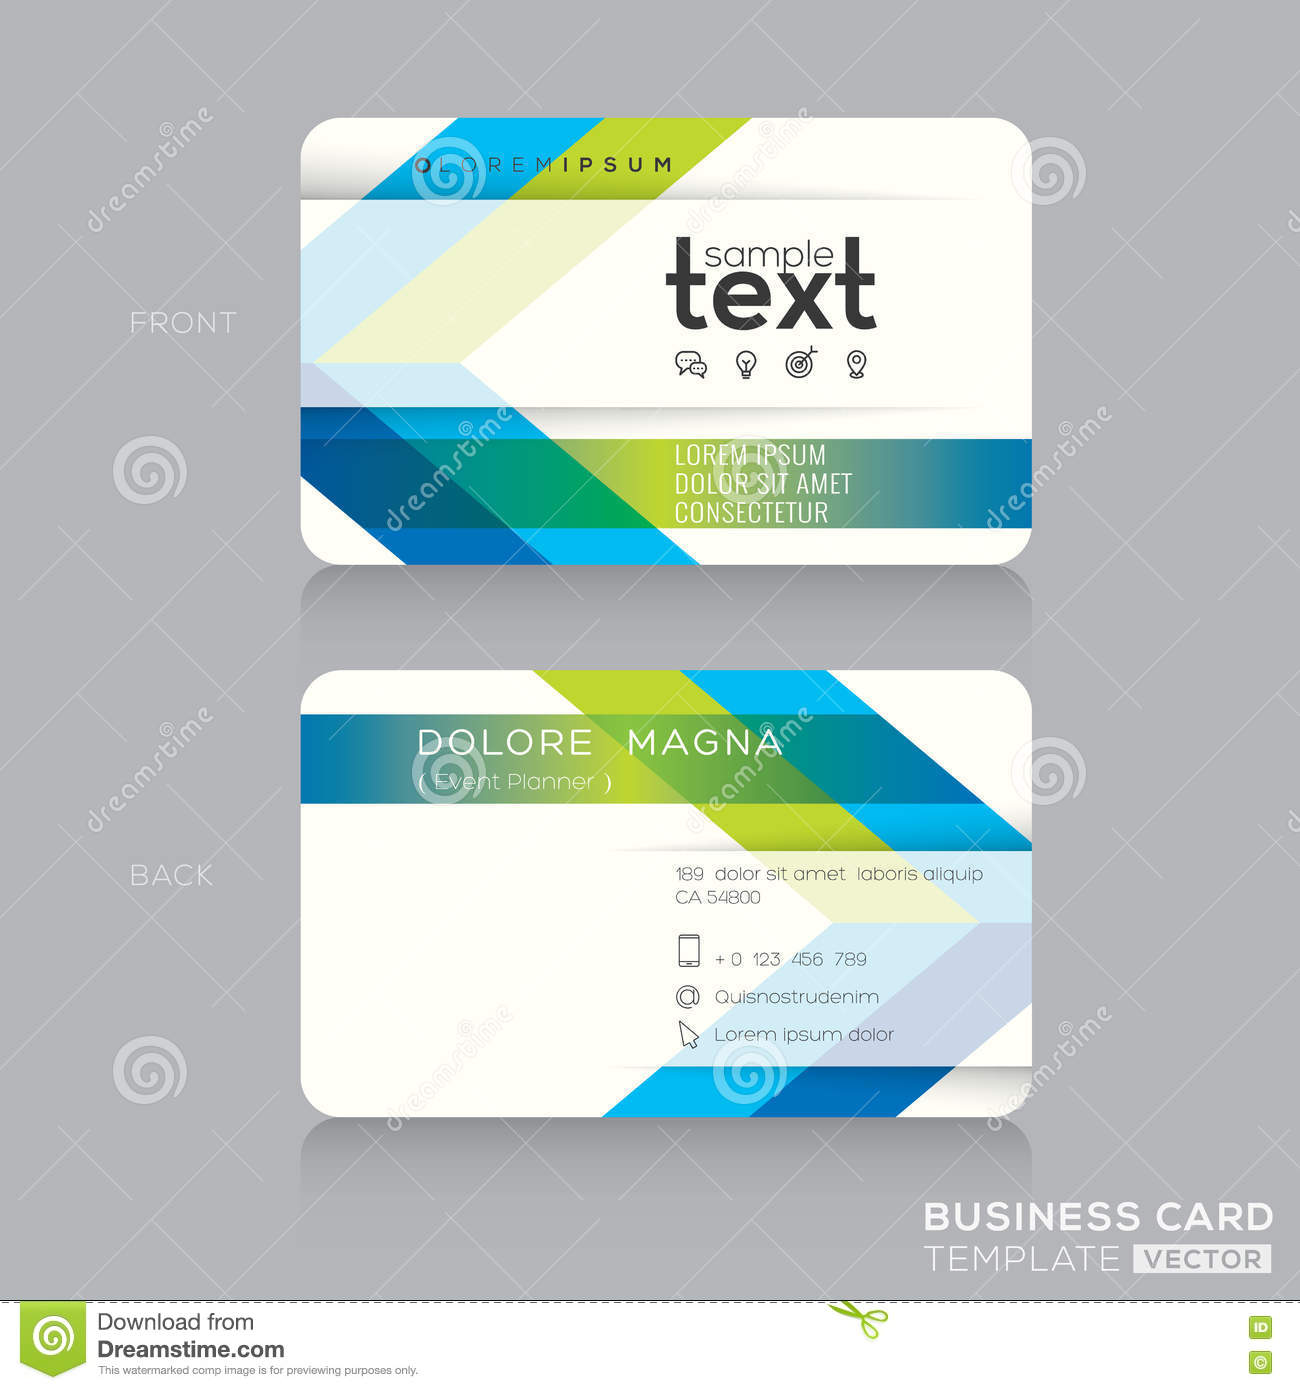 Trendy business card template with green and blue arrow background trendy business card template with green and blue arrow background friedricerecipe Images